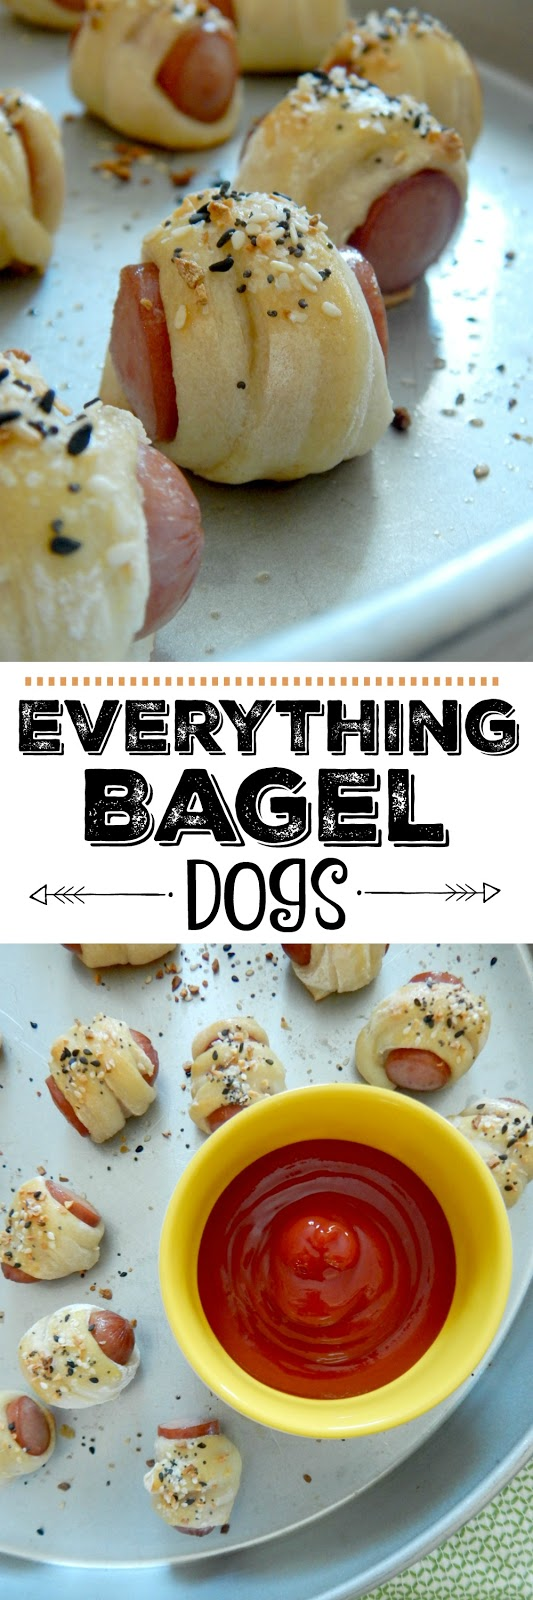 Everthing Bagel Dogs...perfect party appetizer! Great finger food for the Super Bowl, potlucks, tailgating or appetizer nights. (sweetandsavoryfood.com)